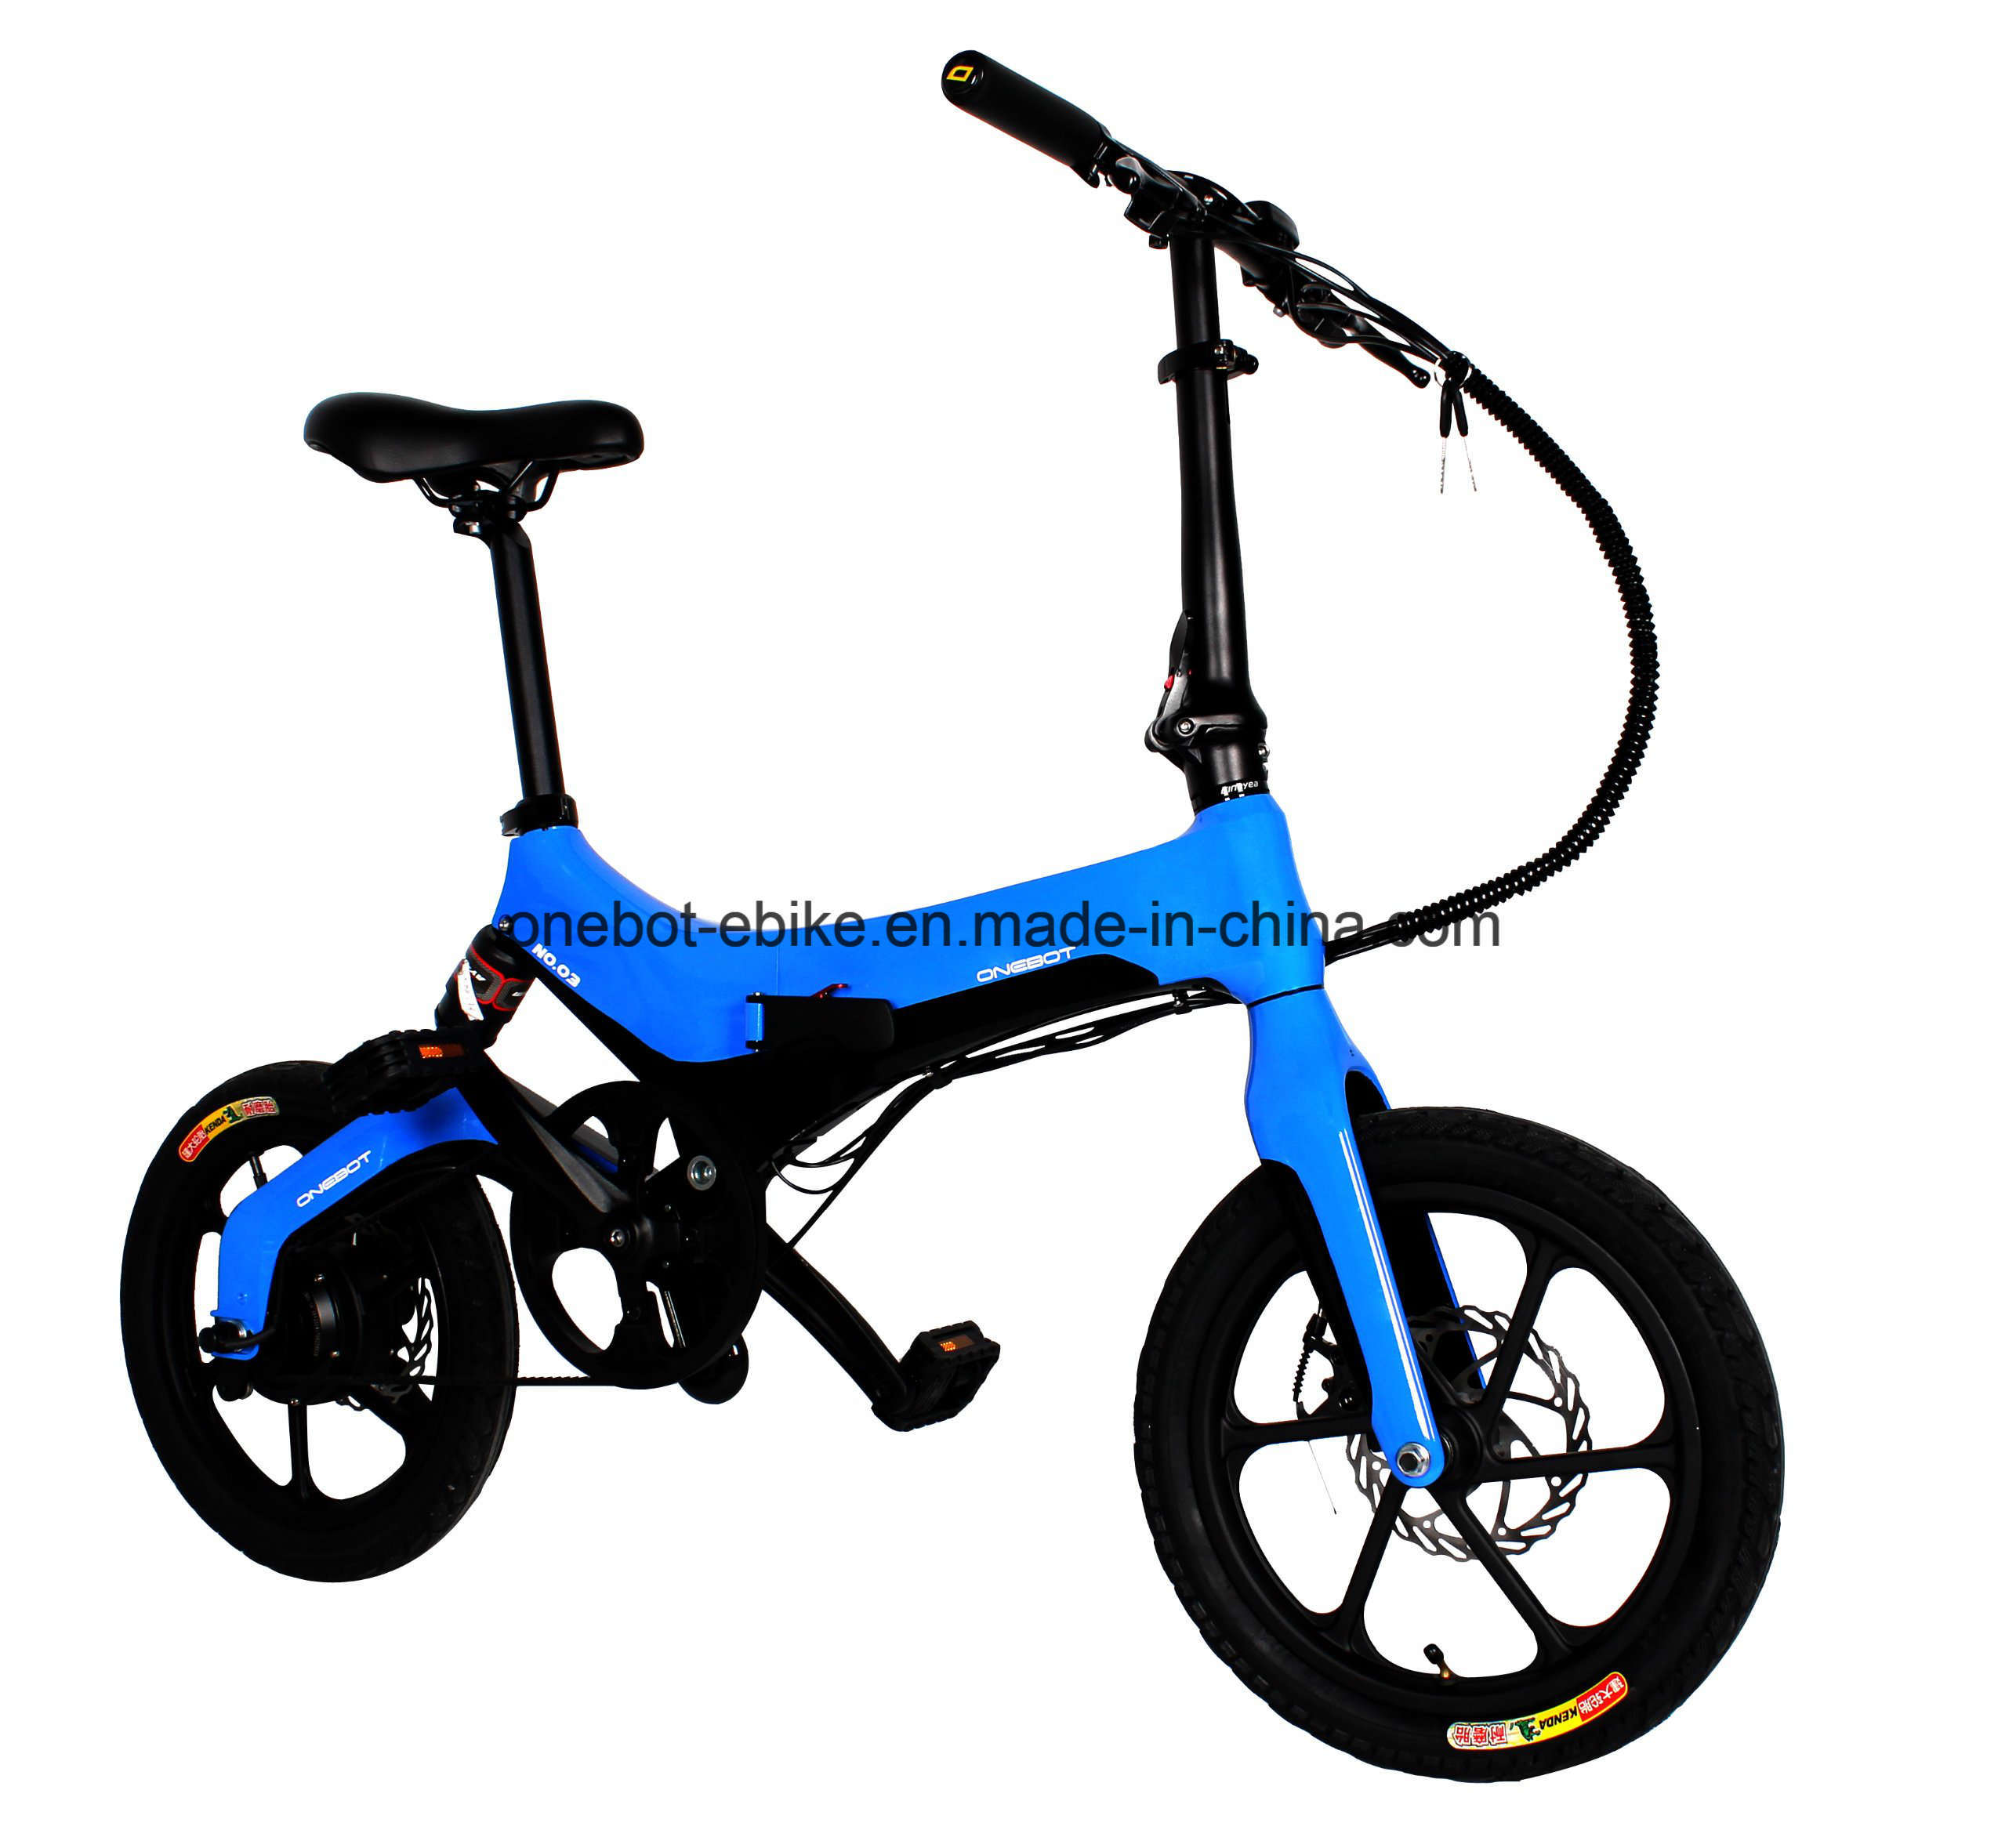 China Unique Design of Onebot Pedal Assisted Ebike with Magnesium ...